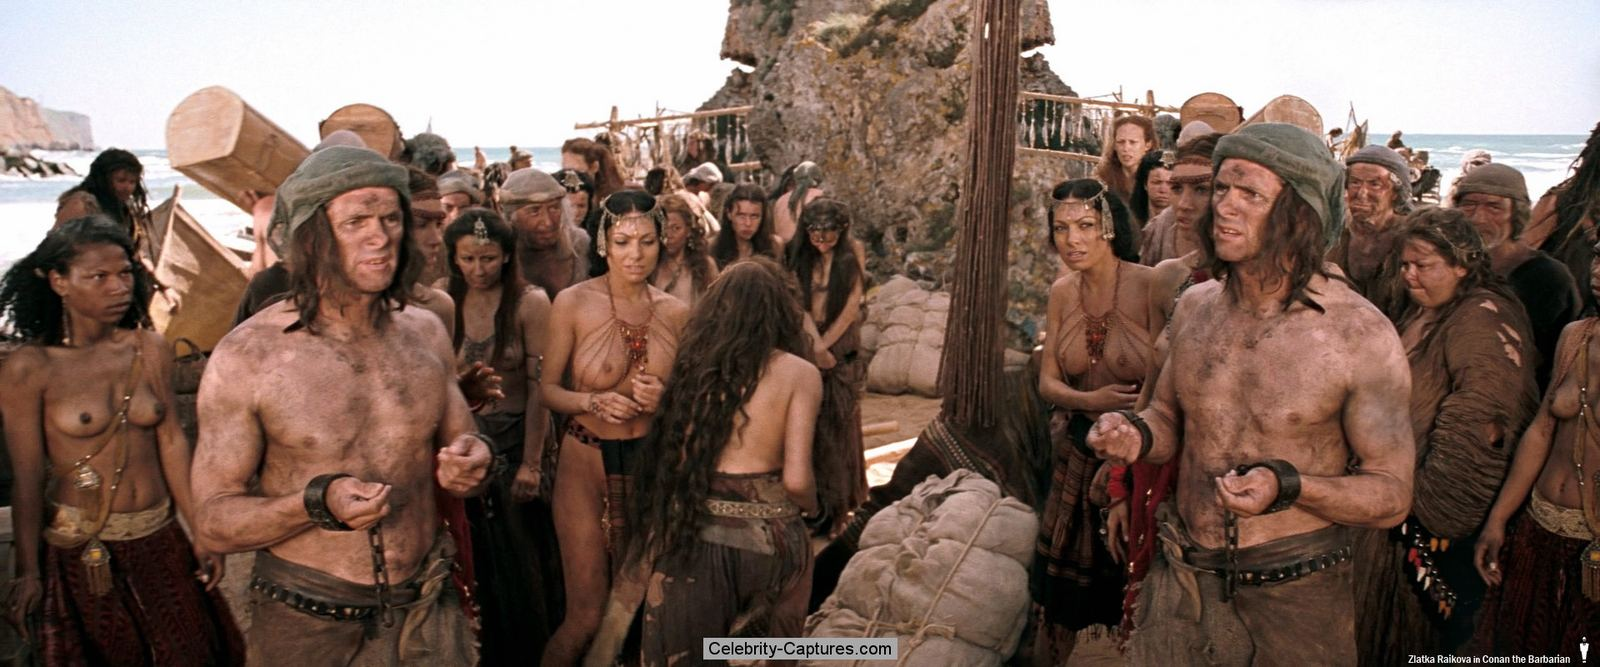 Naked picture in conan the barbarian adult pics